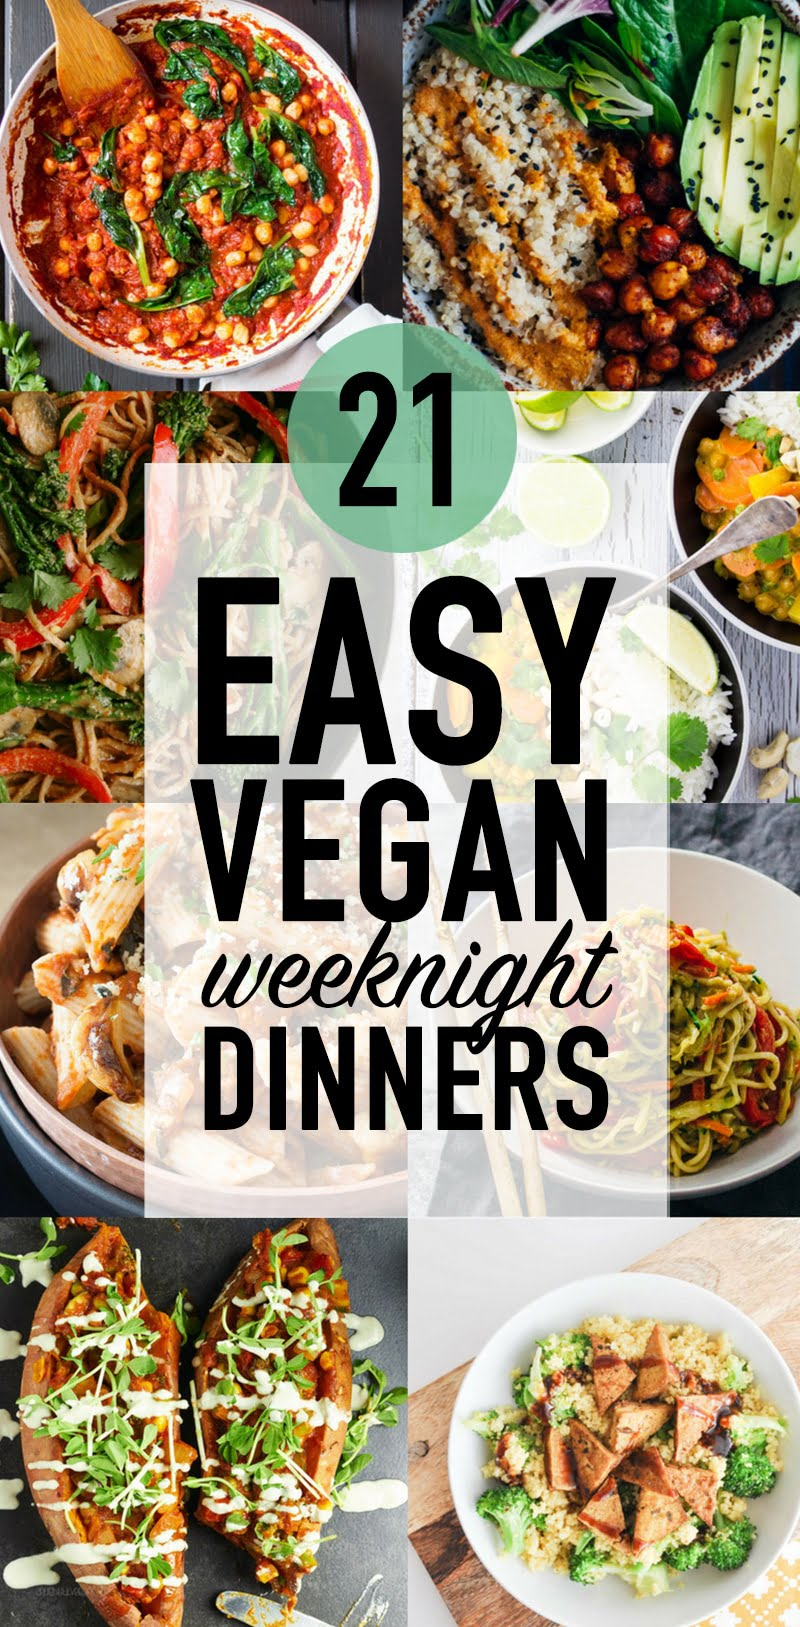 21 Easy Weeknight Dinners for Veganuary